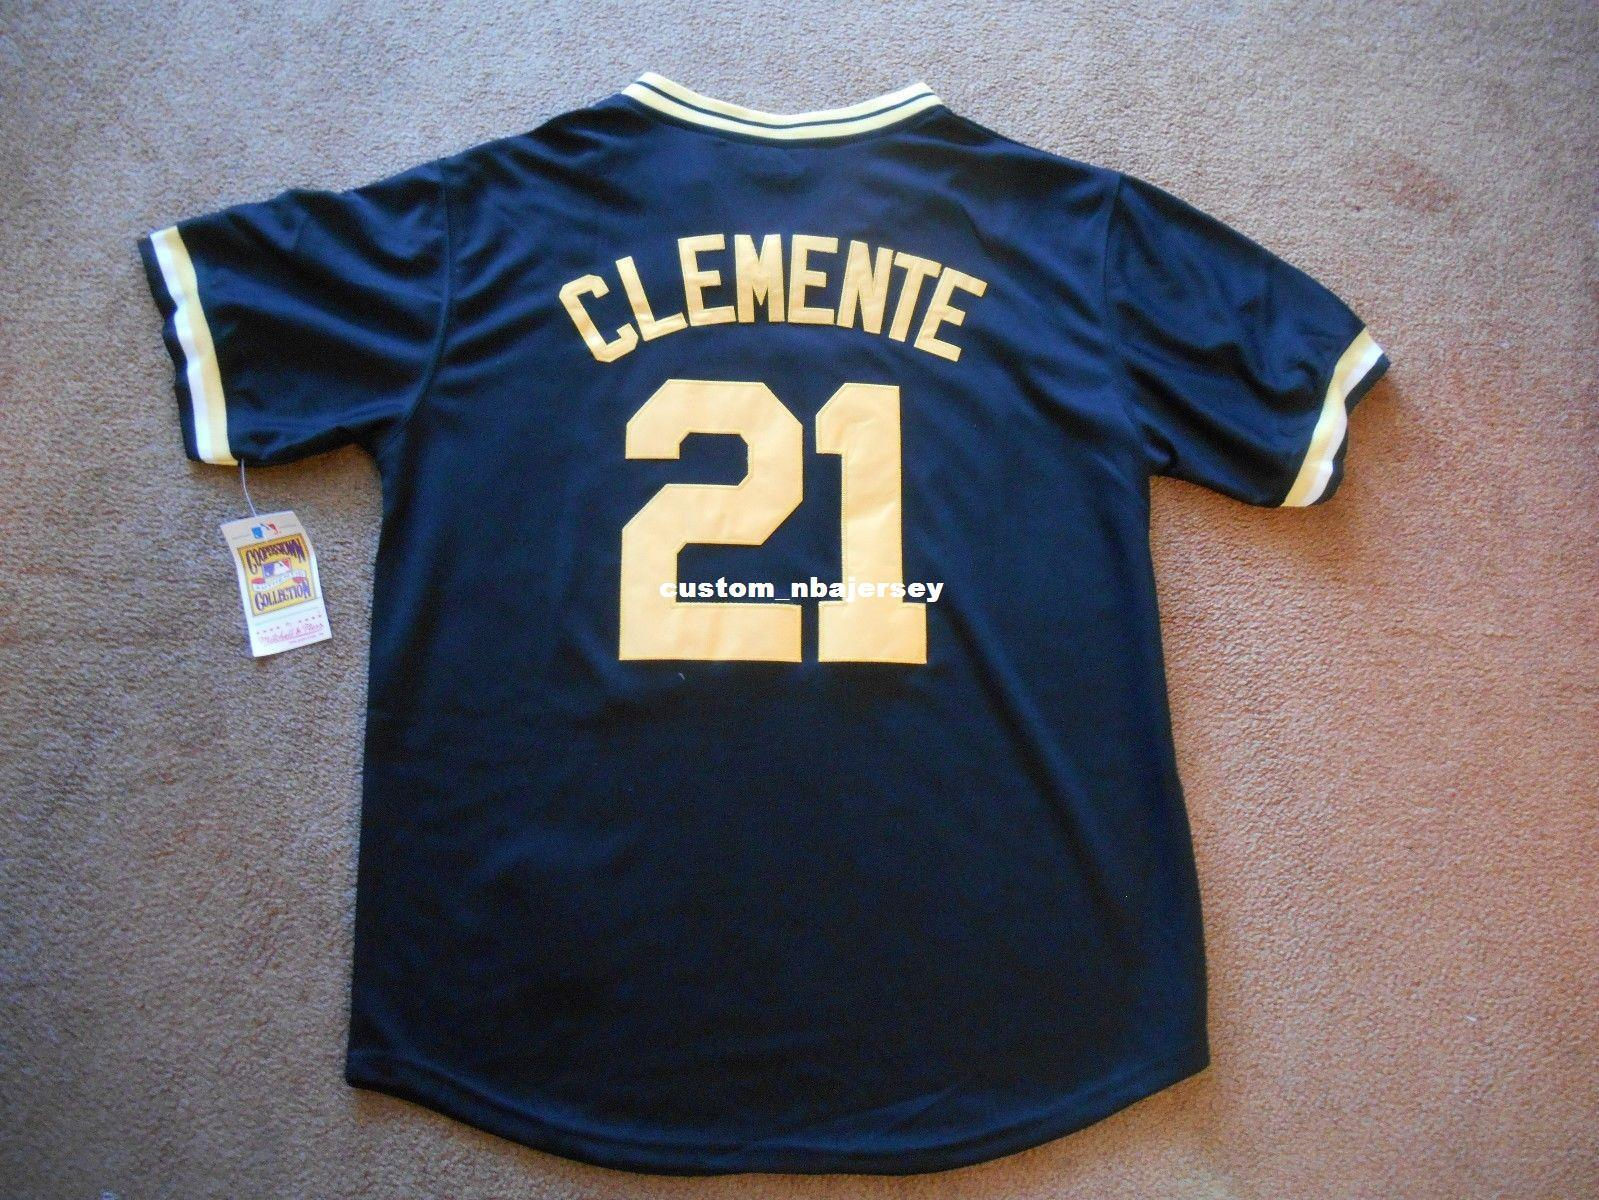 sports shoes 638c5 e46d0 Cheap custom Roberto Clemente #21 Baseball Jersey Stitched Customize any  name number MEN WOMEN YOUTH Jerseys